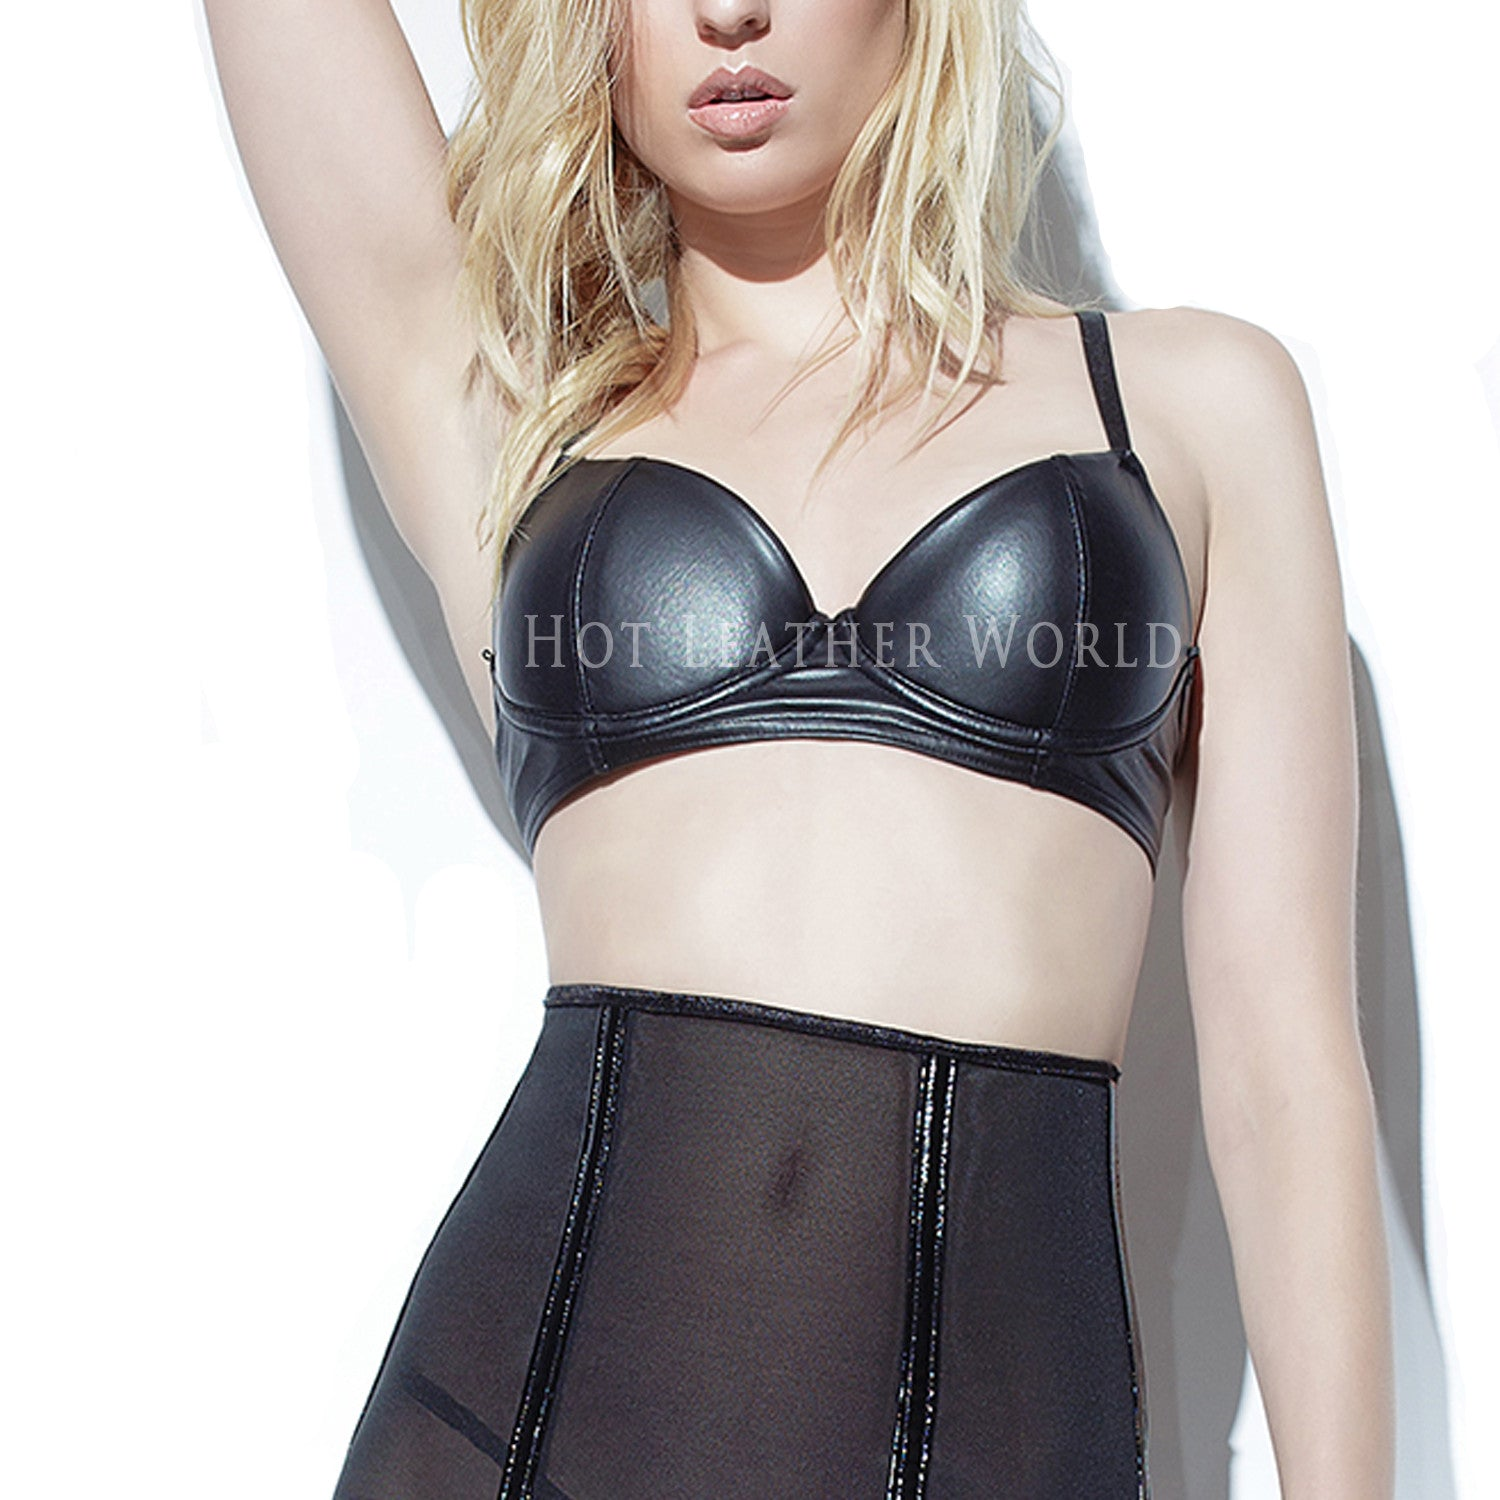 Black Wet Look Bra -  HOTLEATHERWORLD